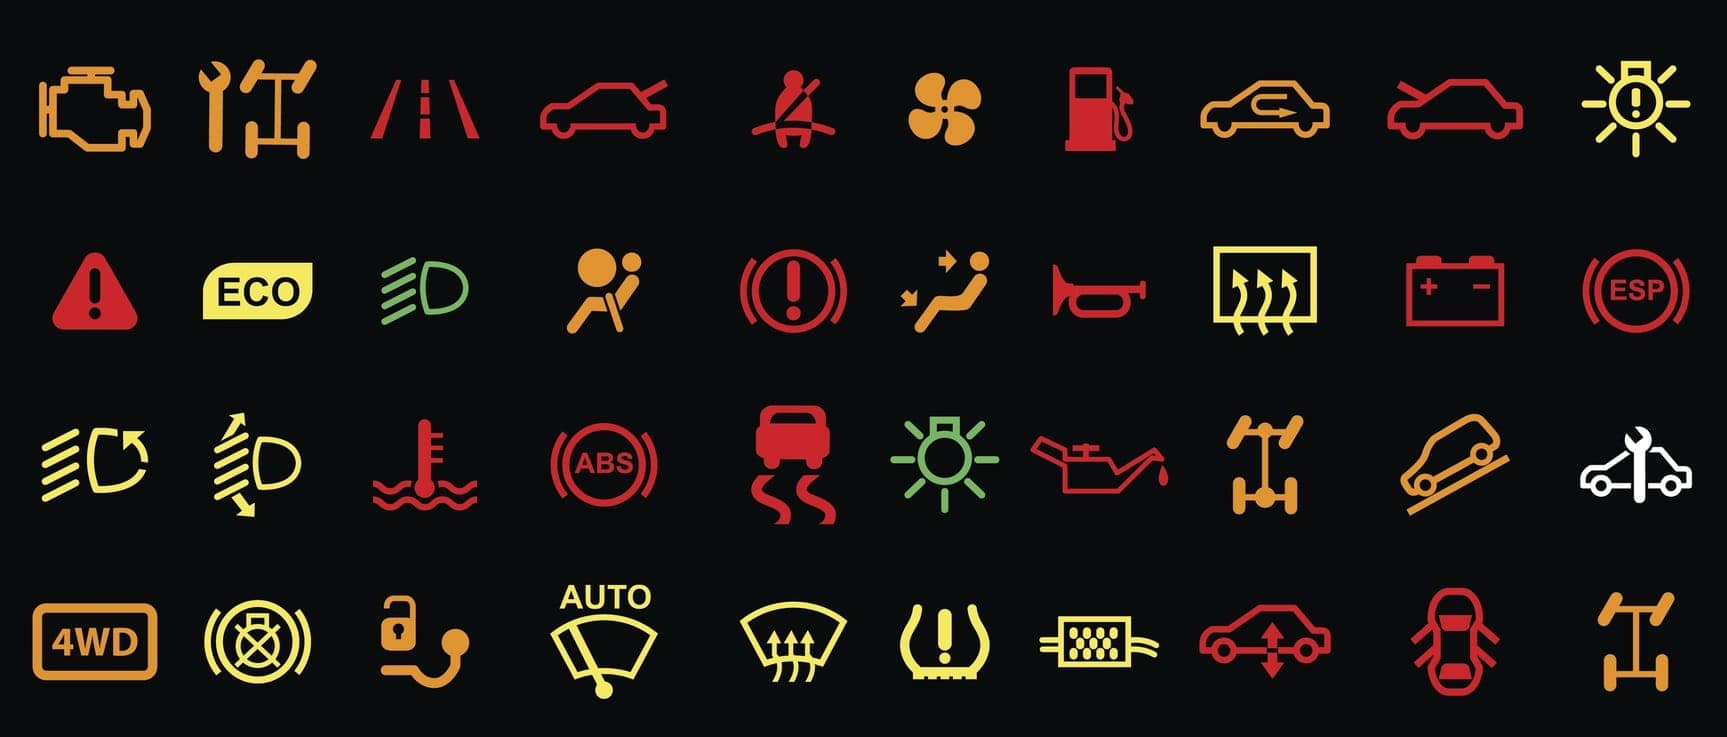 A bunch of different symbols that can pop up in your car